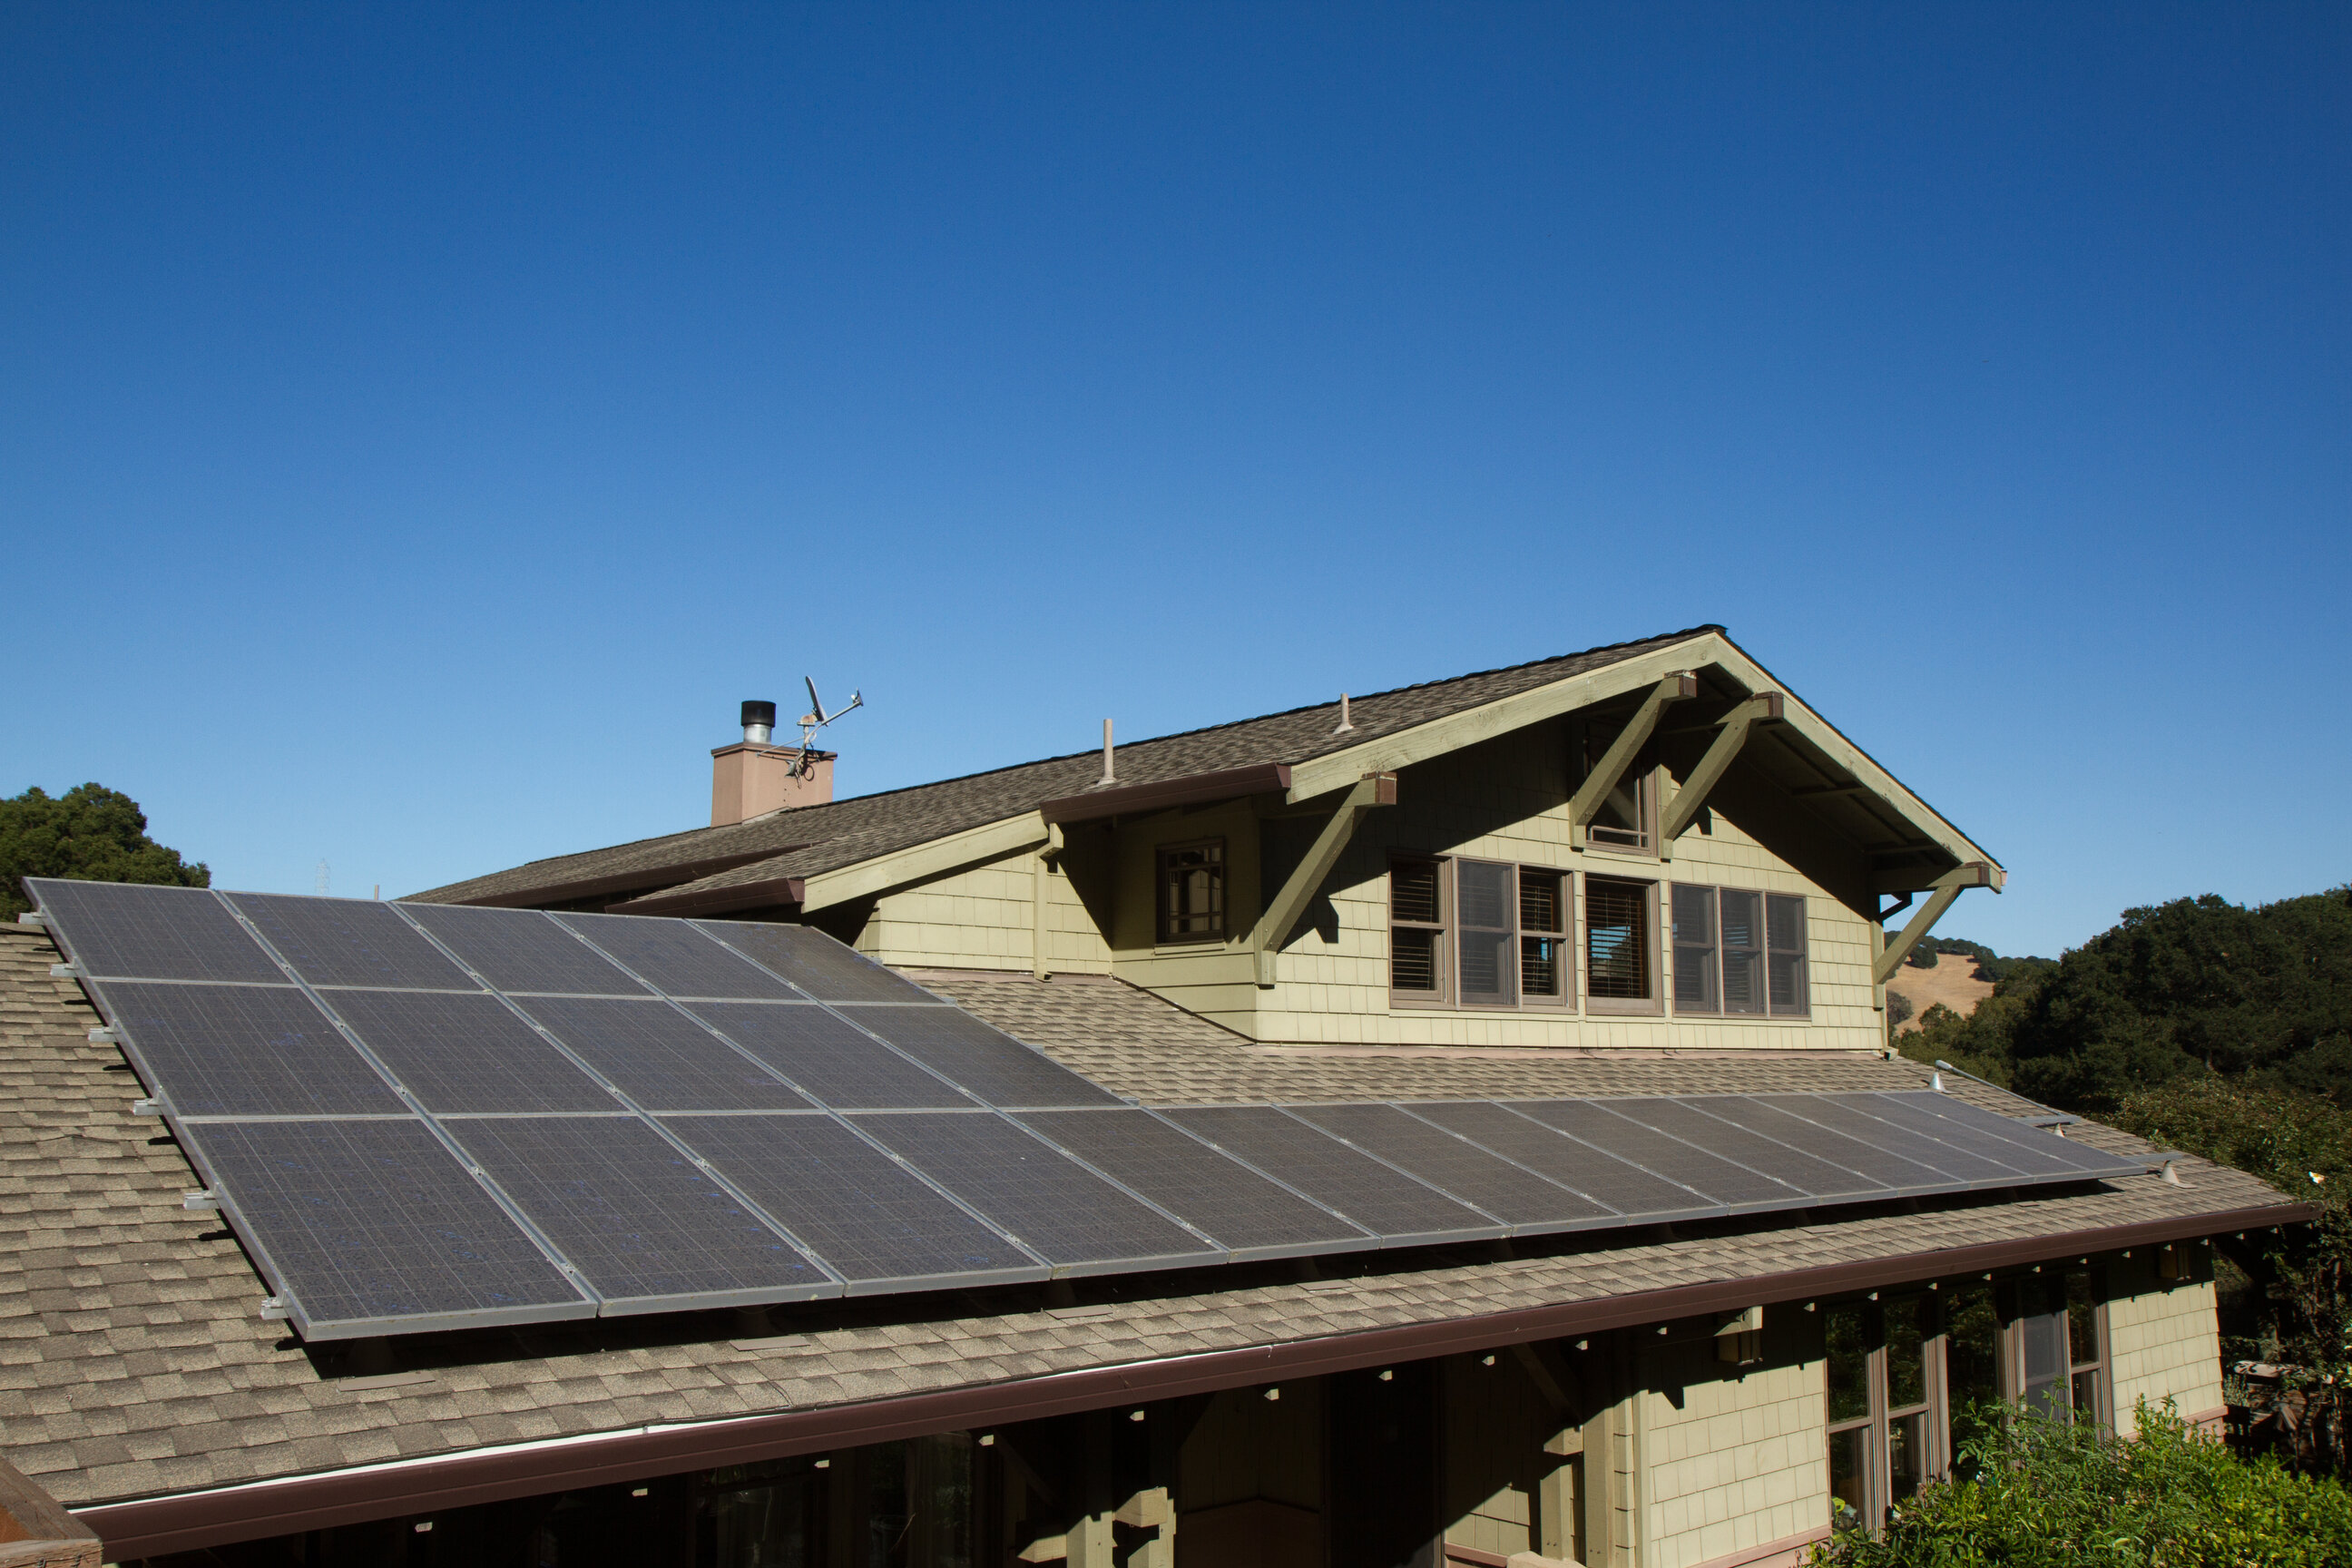 A green home with solar panels on the roof.